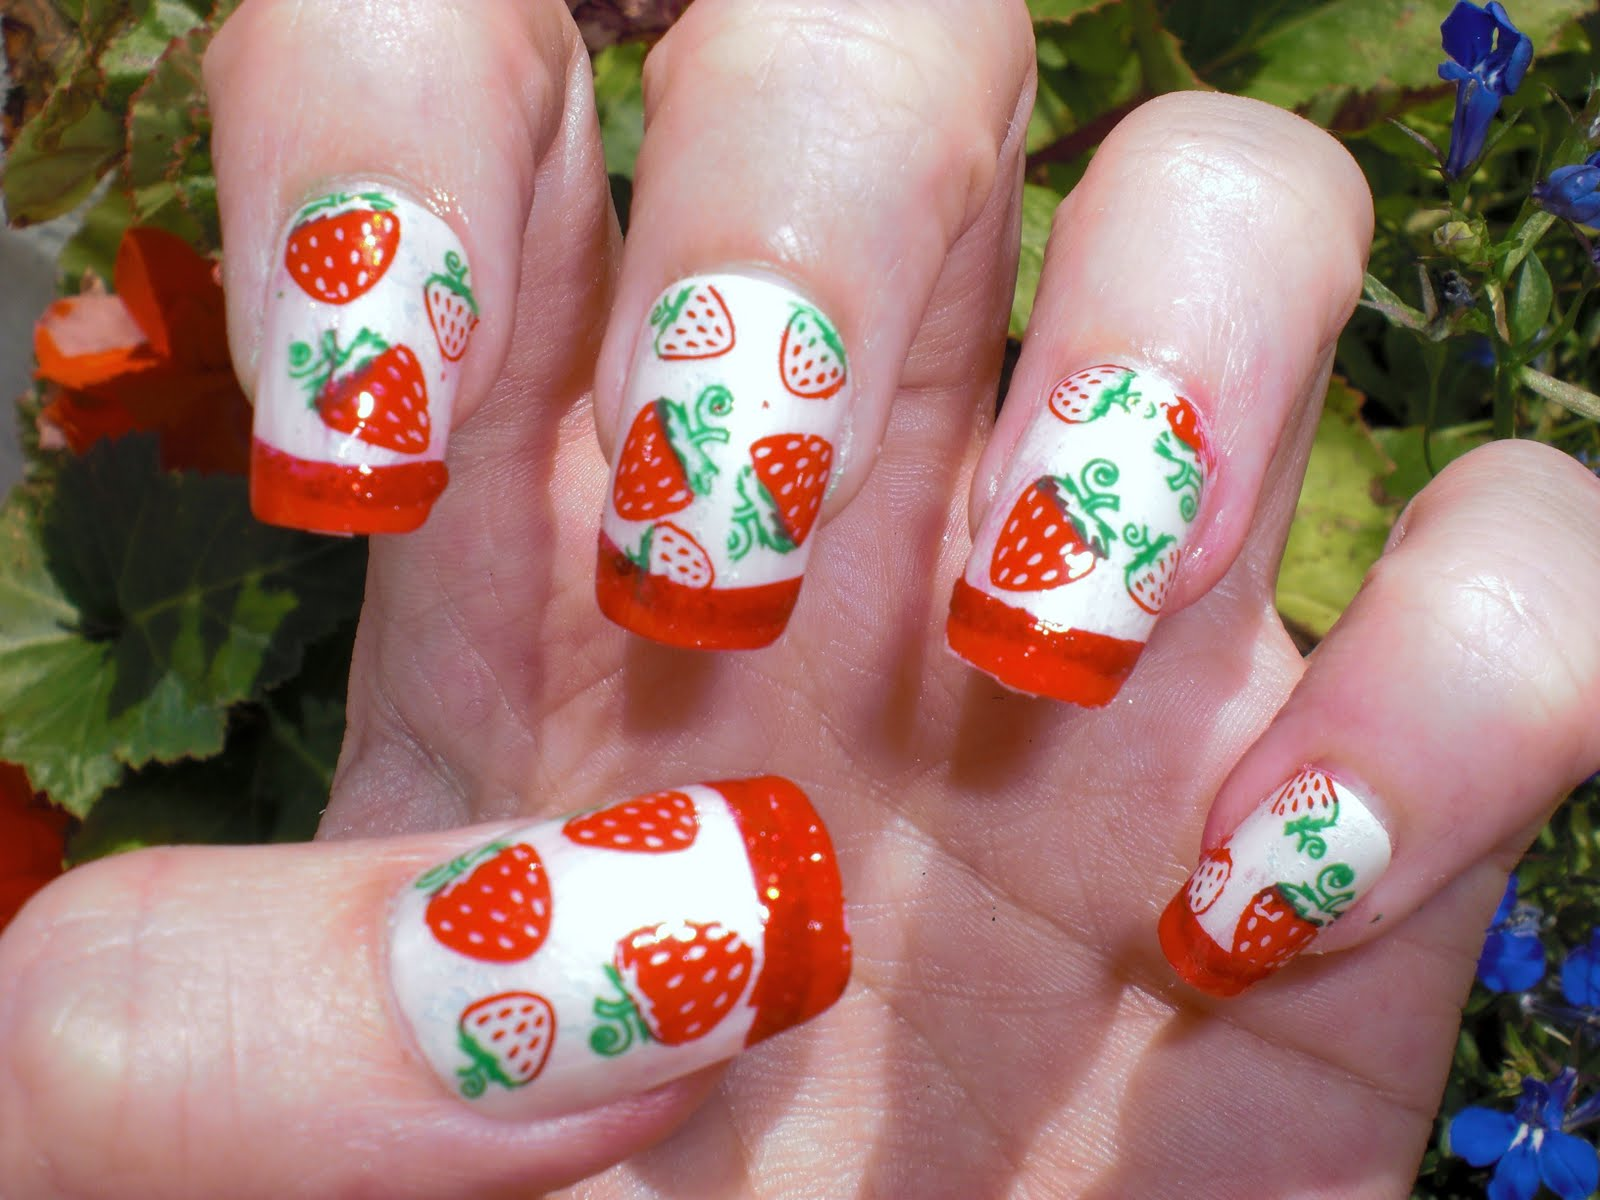 cupcake nail designs ideas-7